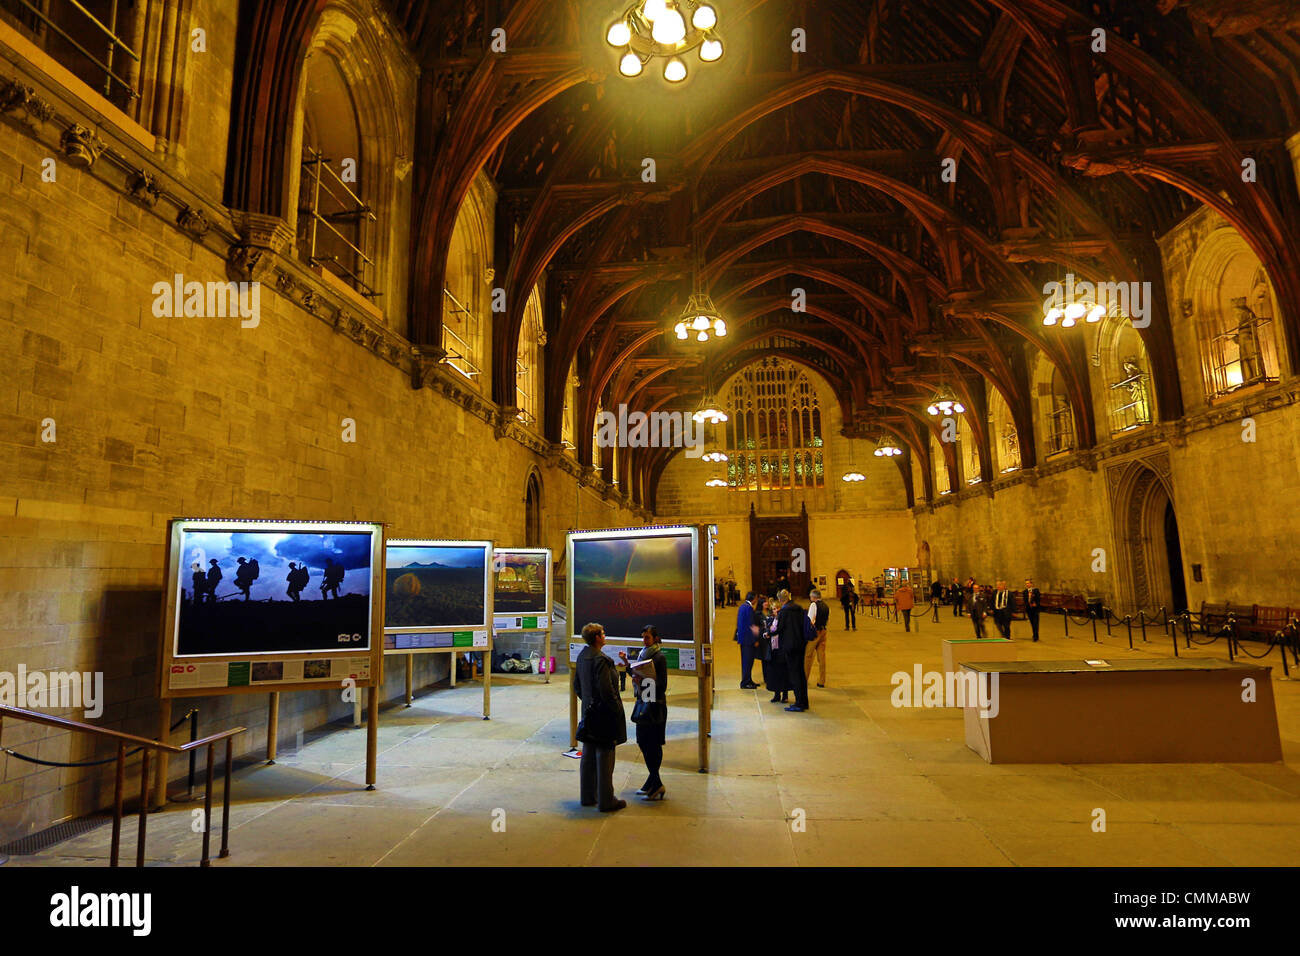 London, UK. 5th November 2013. Fields of Battle Lands of Peace 14-18 pre-launch exhibition at Westminster Hall, - Stock Image